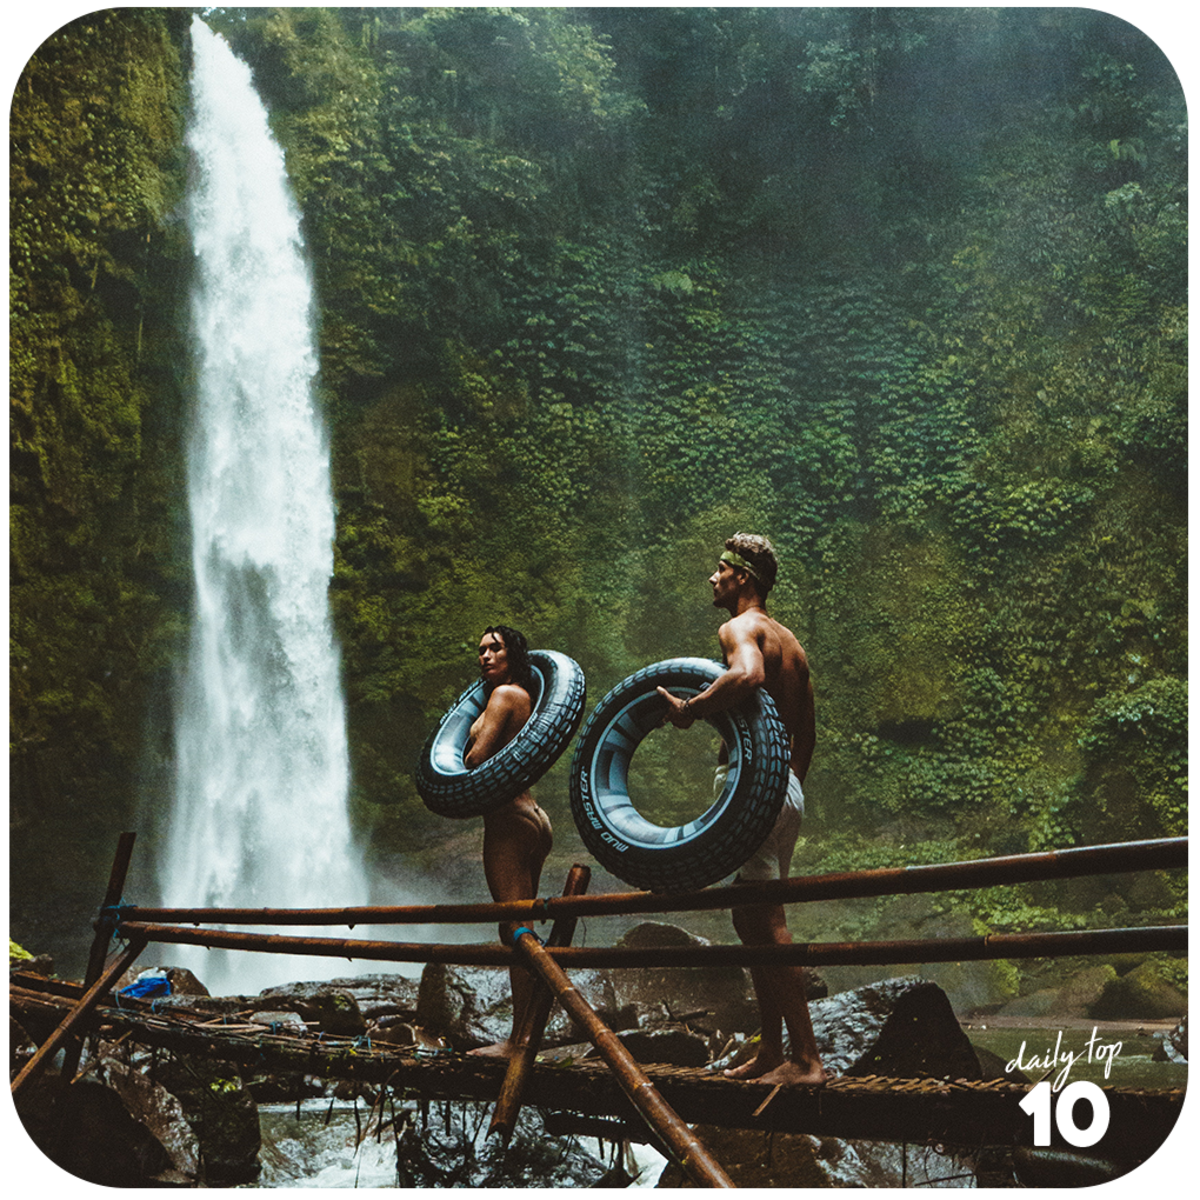 Go out for a hike at a nearby mountain or  go waterfalls chasing at the tropics!